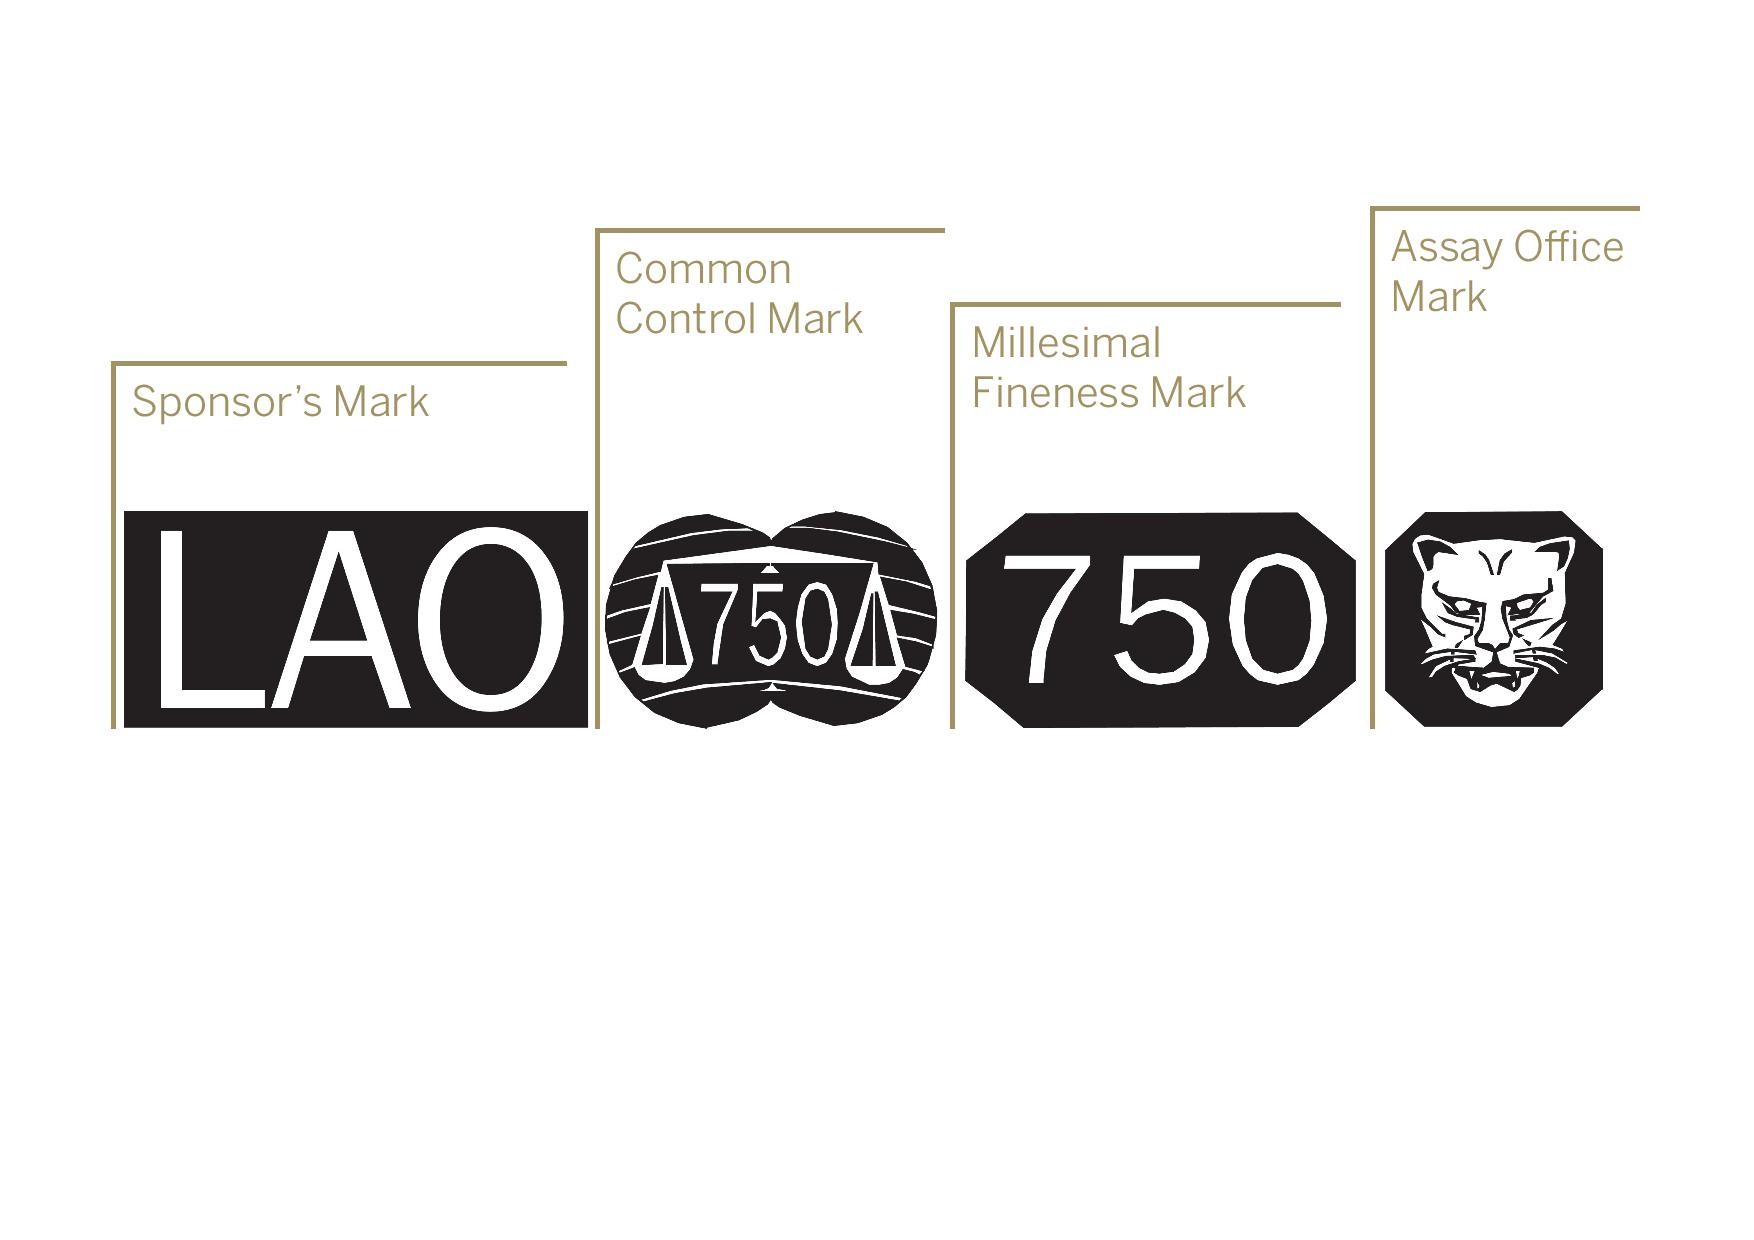 UK & Convention Marks | Goldsmiths Assay Office in London